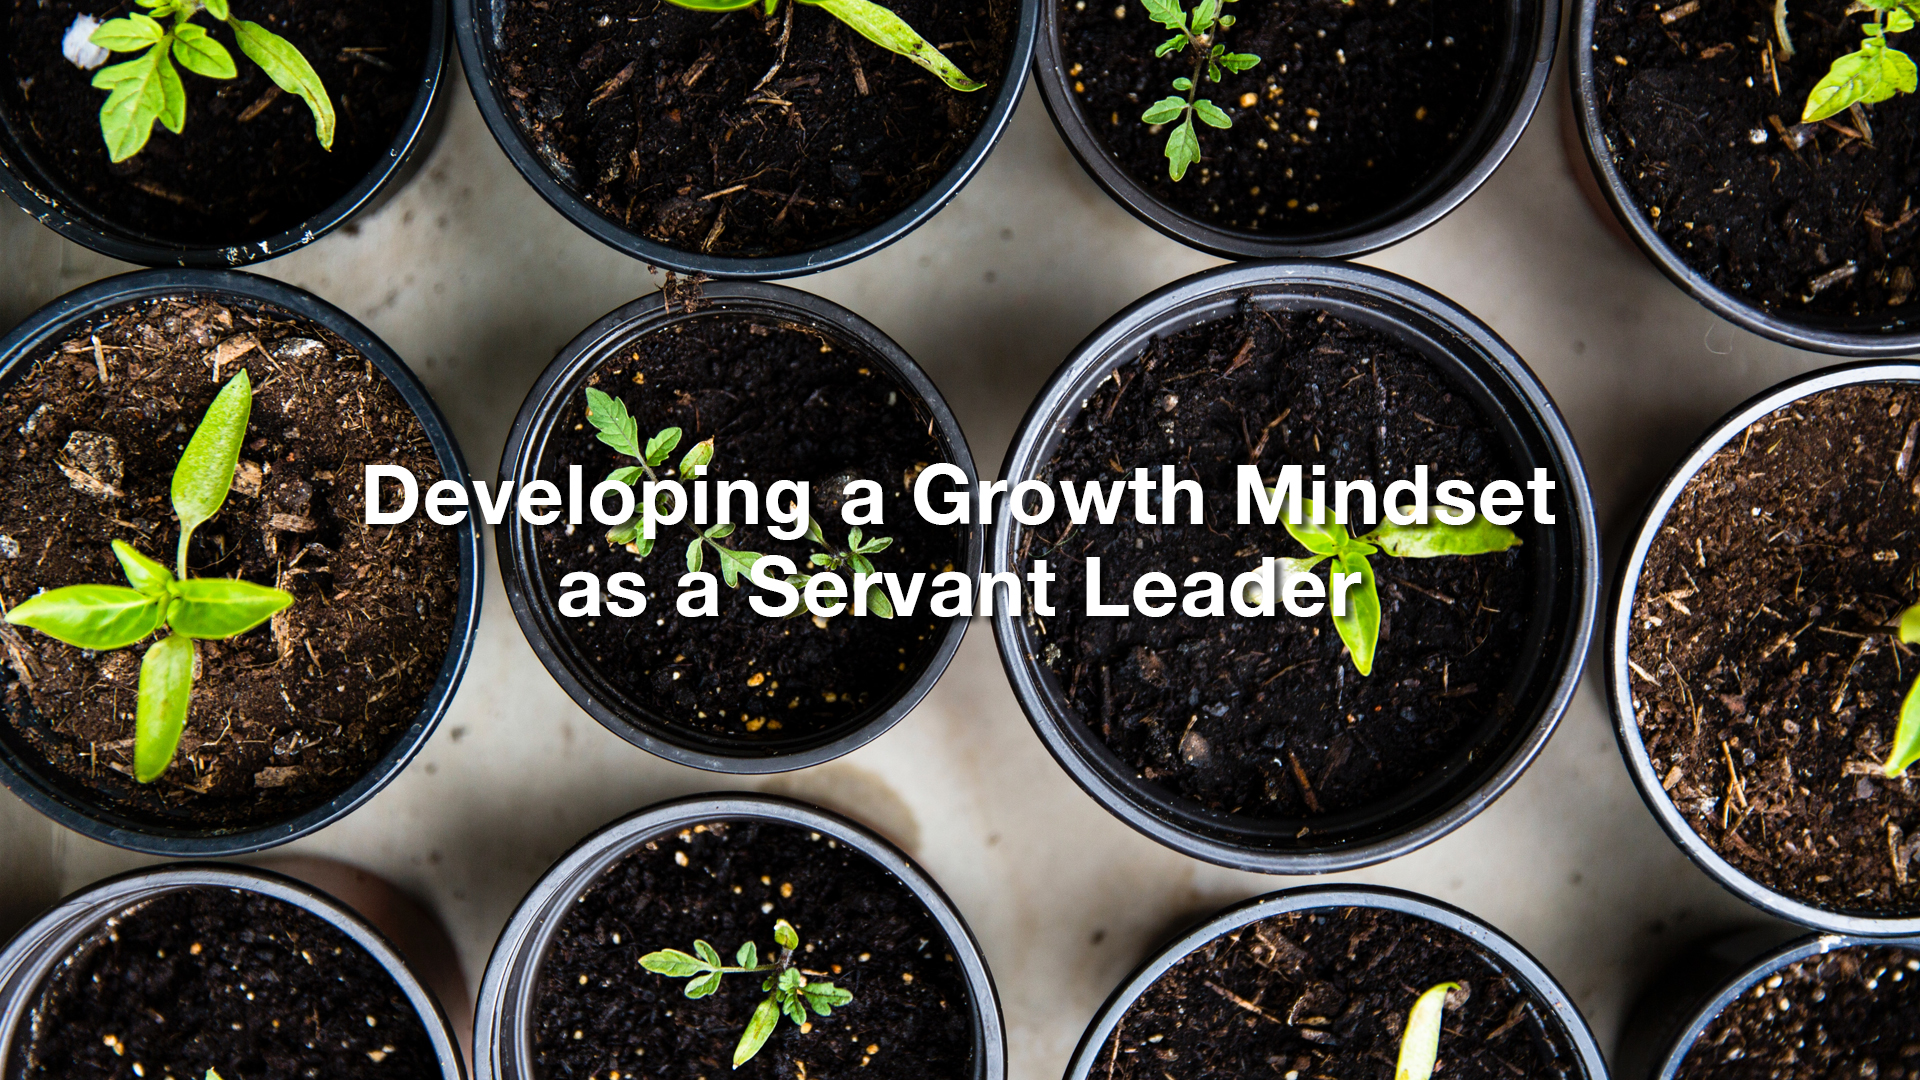 Developing a Growth Mindset 1920x1080.jpg